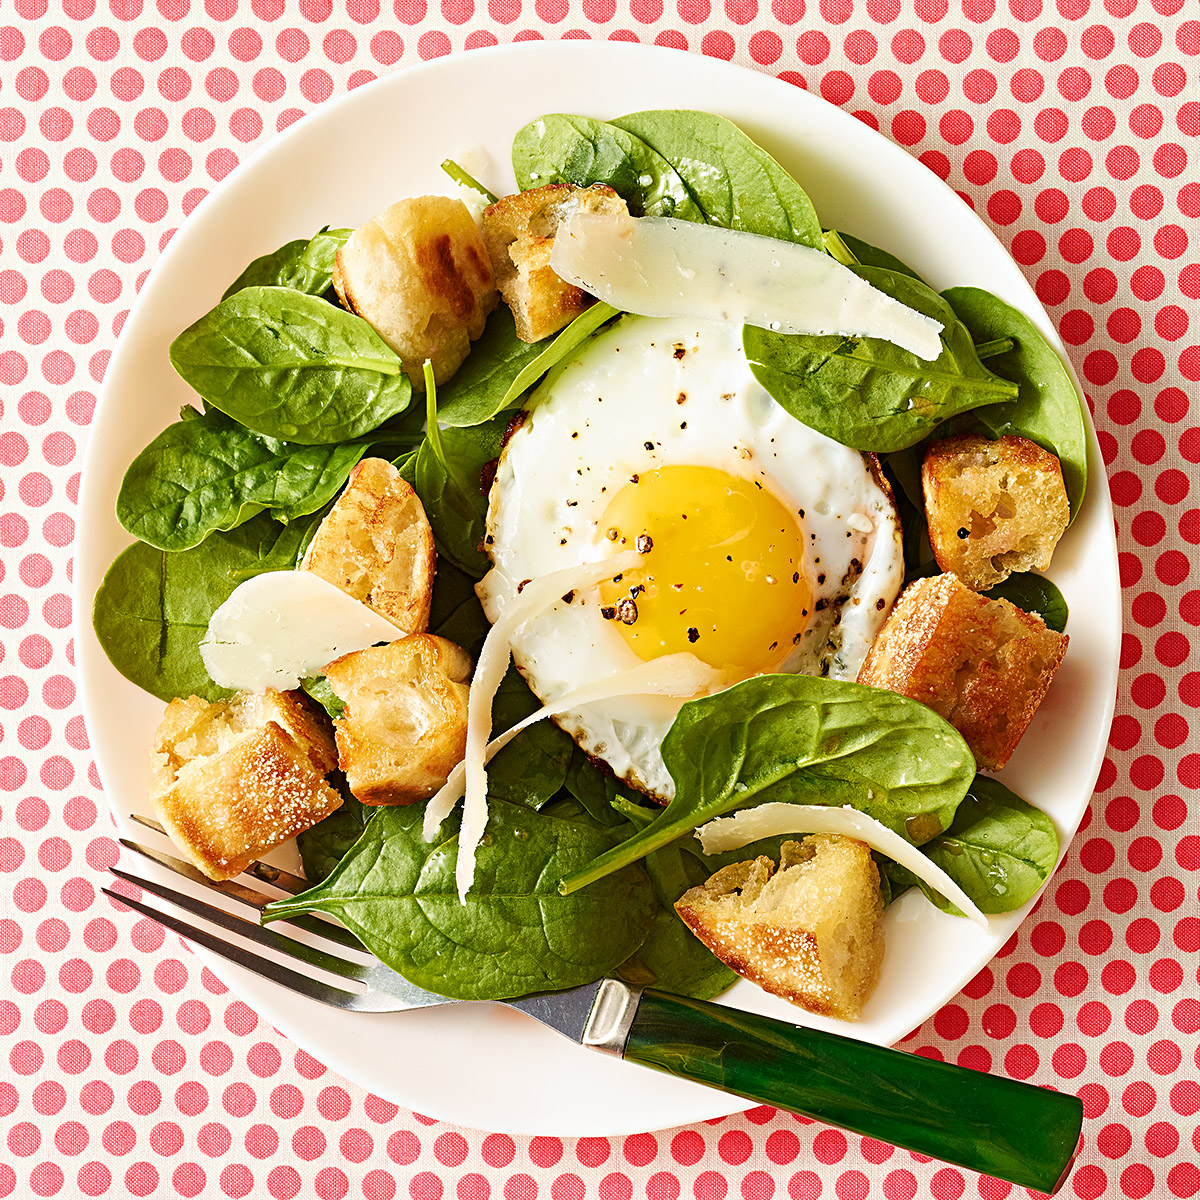 Eggs Florentine Salad with English Muffin Croutons